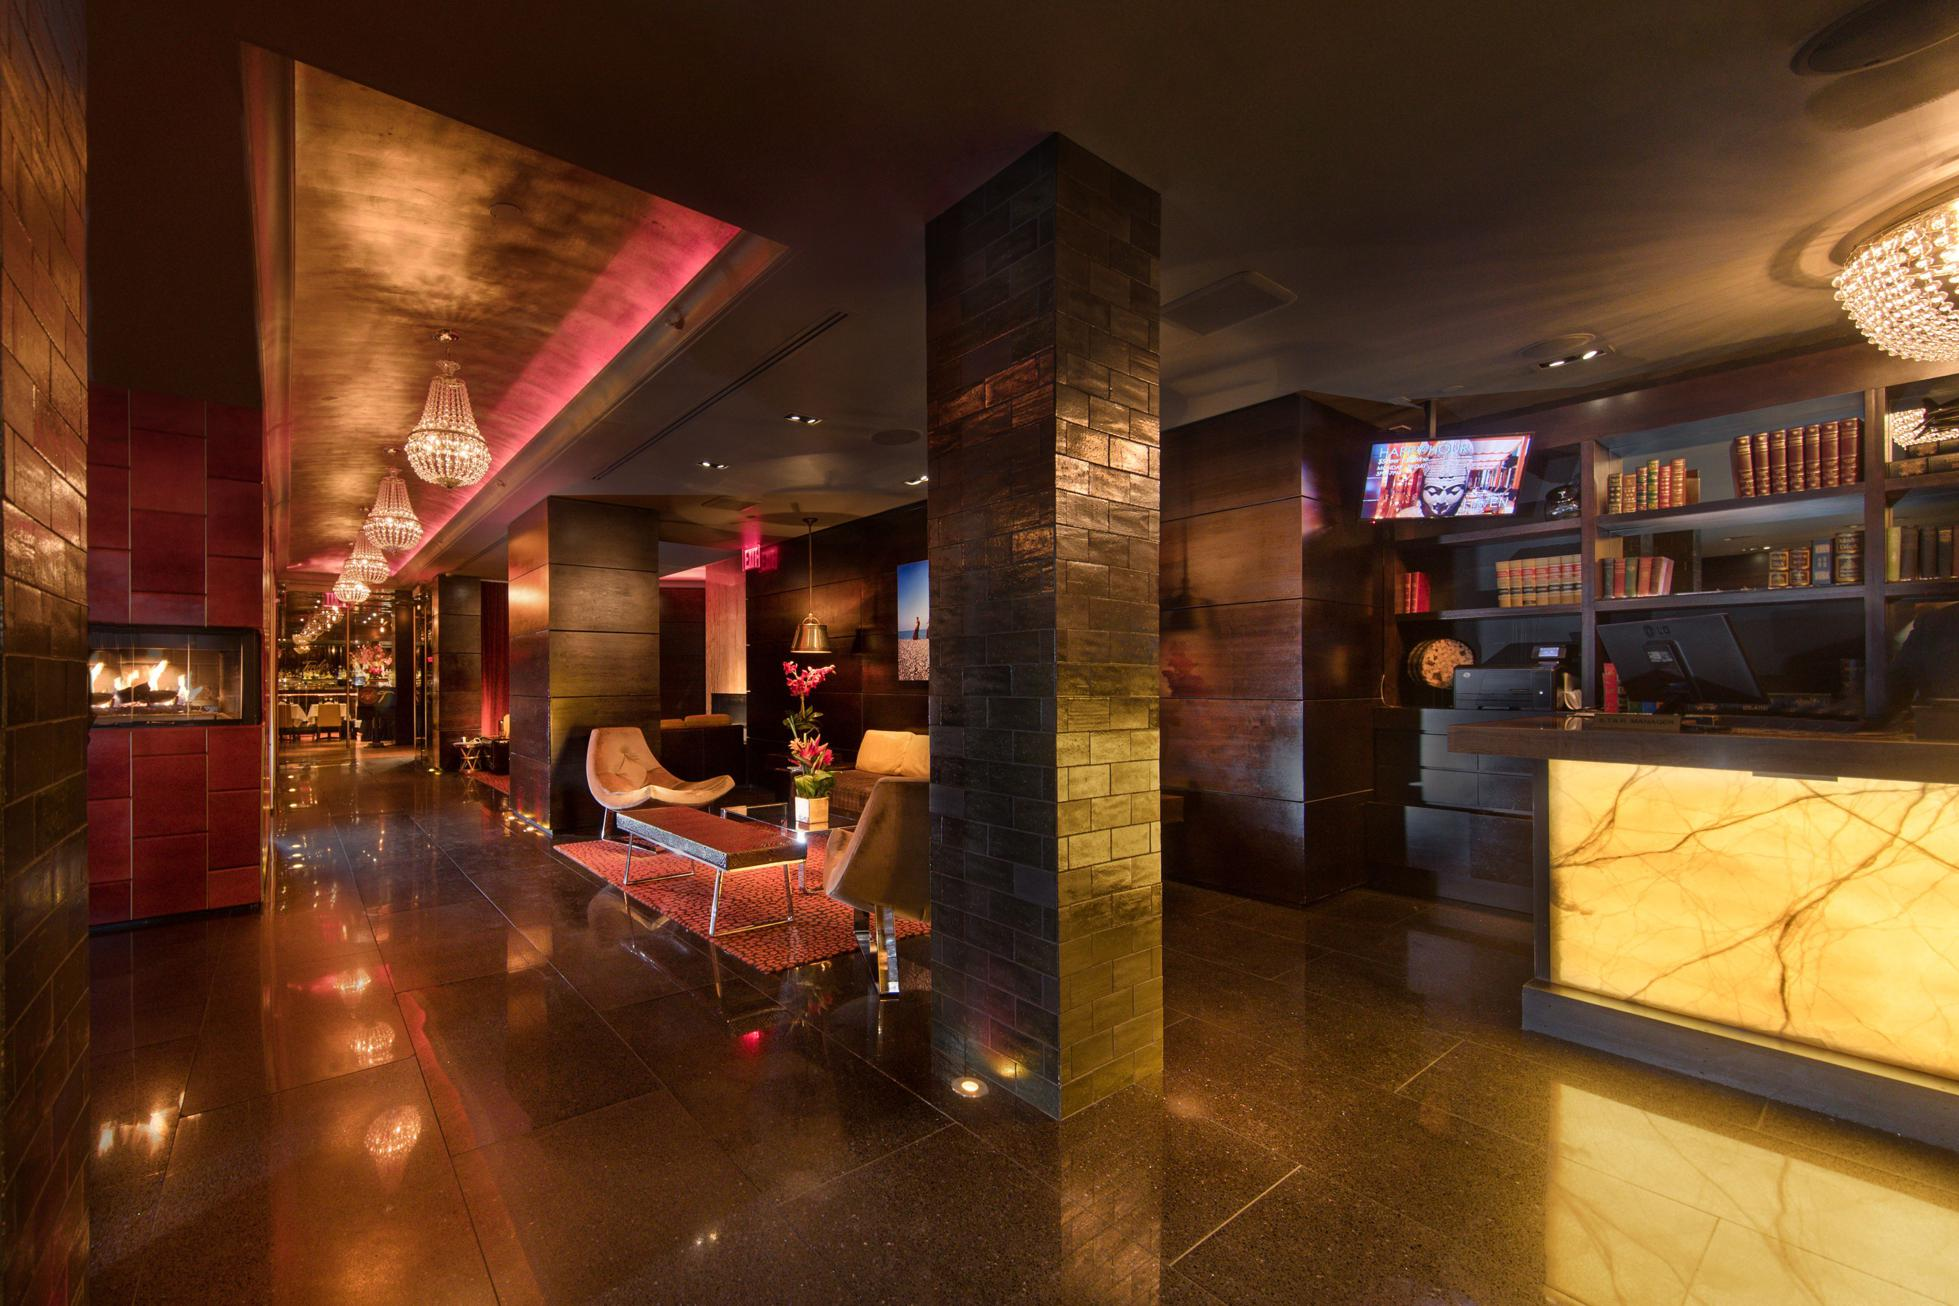 The luxury boutique Sanctuary Hotel in the heart of Times Square was designed for staycations, and to block out the noise of Midtown Manhattan.